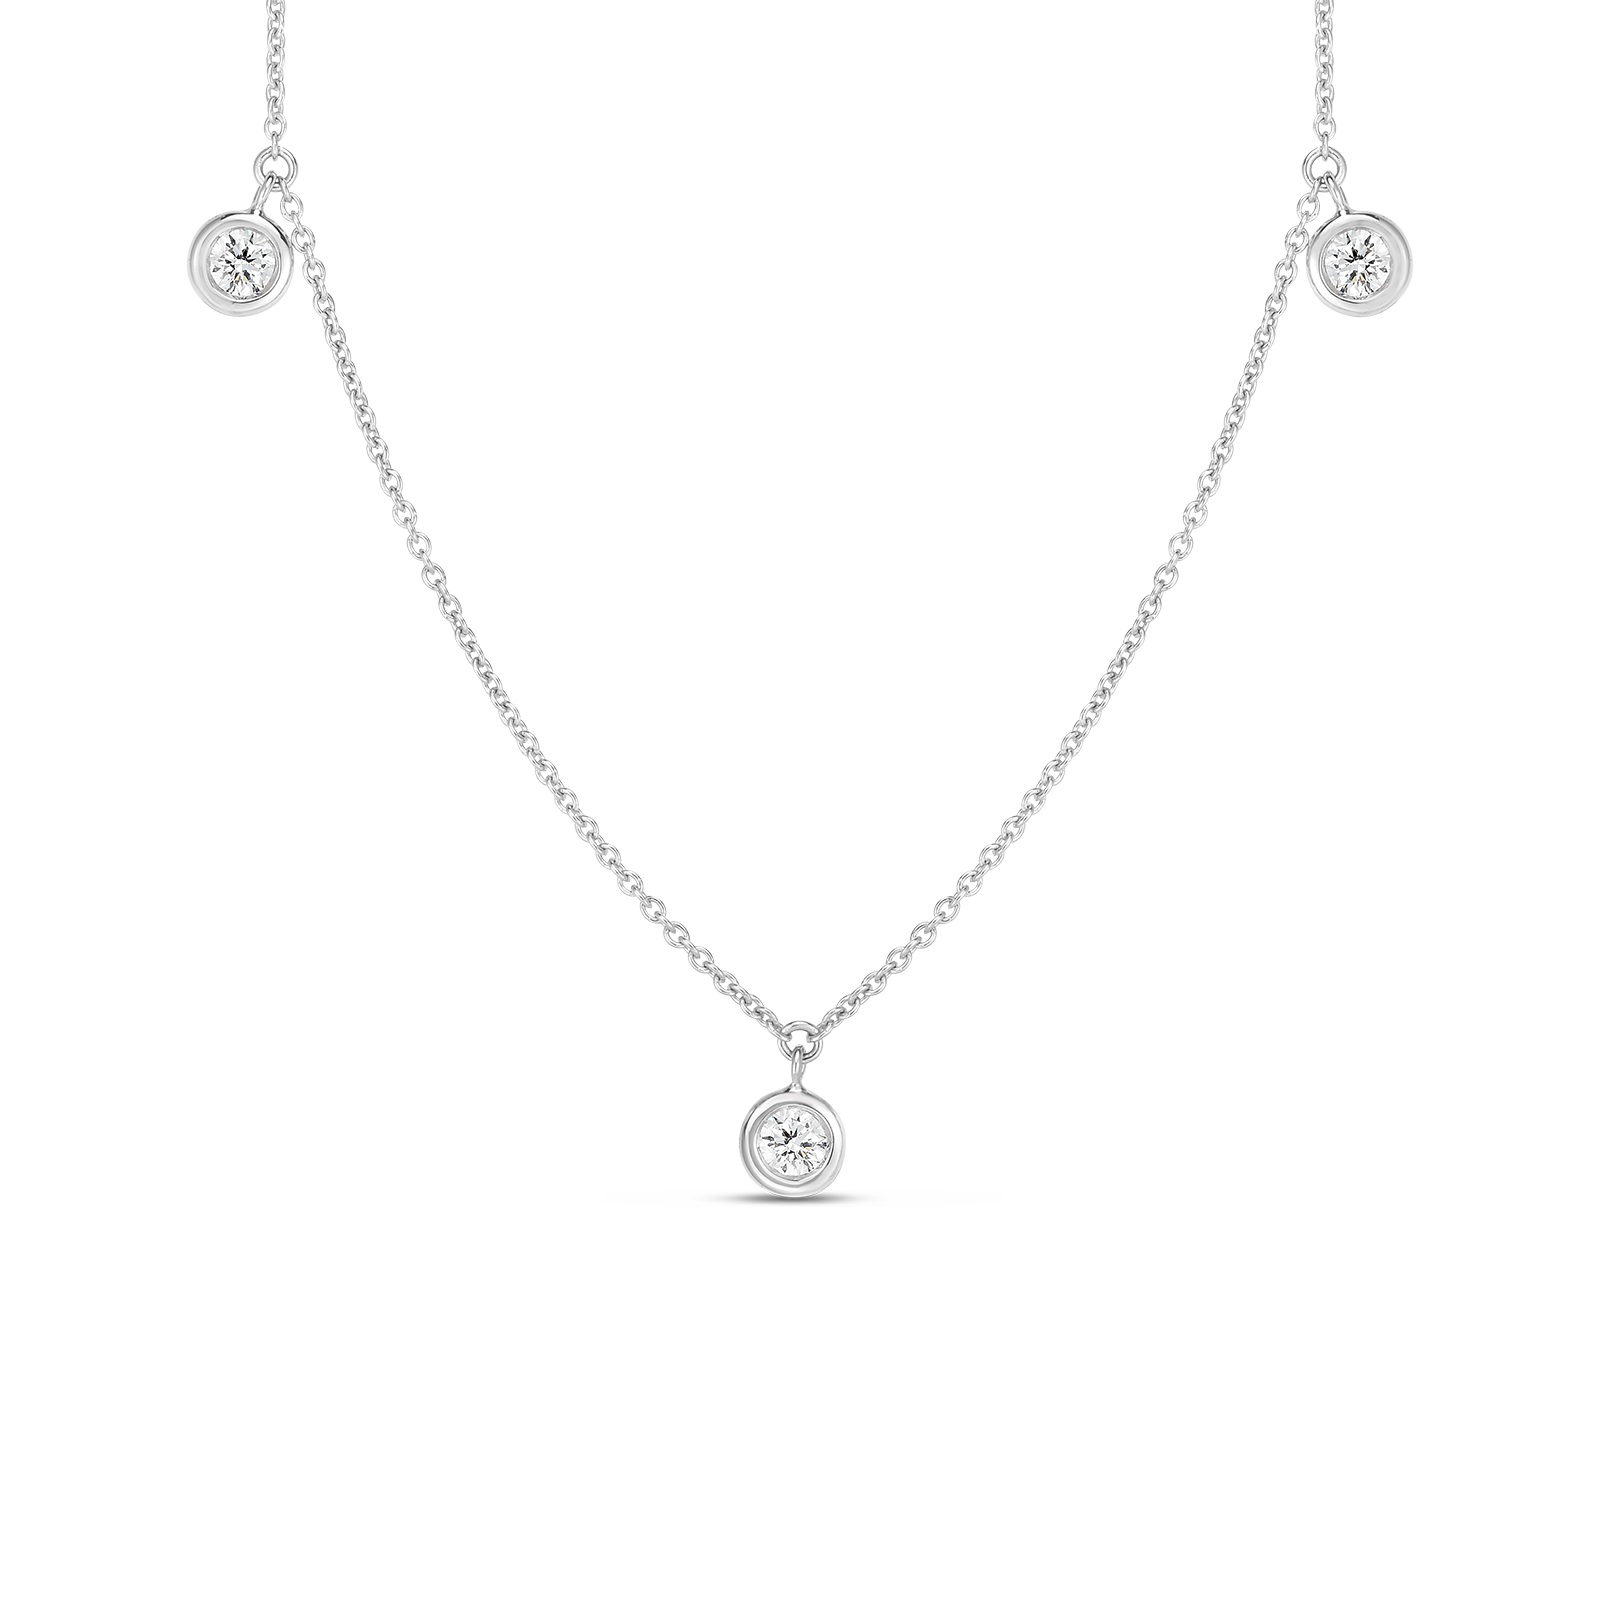 Roberto Coin 18K White Gold .13cts  Diamonds Gold Necklace with Stones 530010AWCHX0